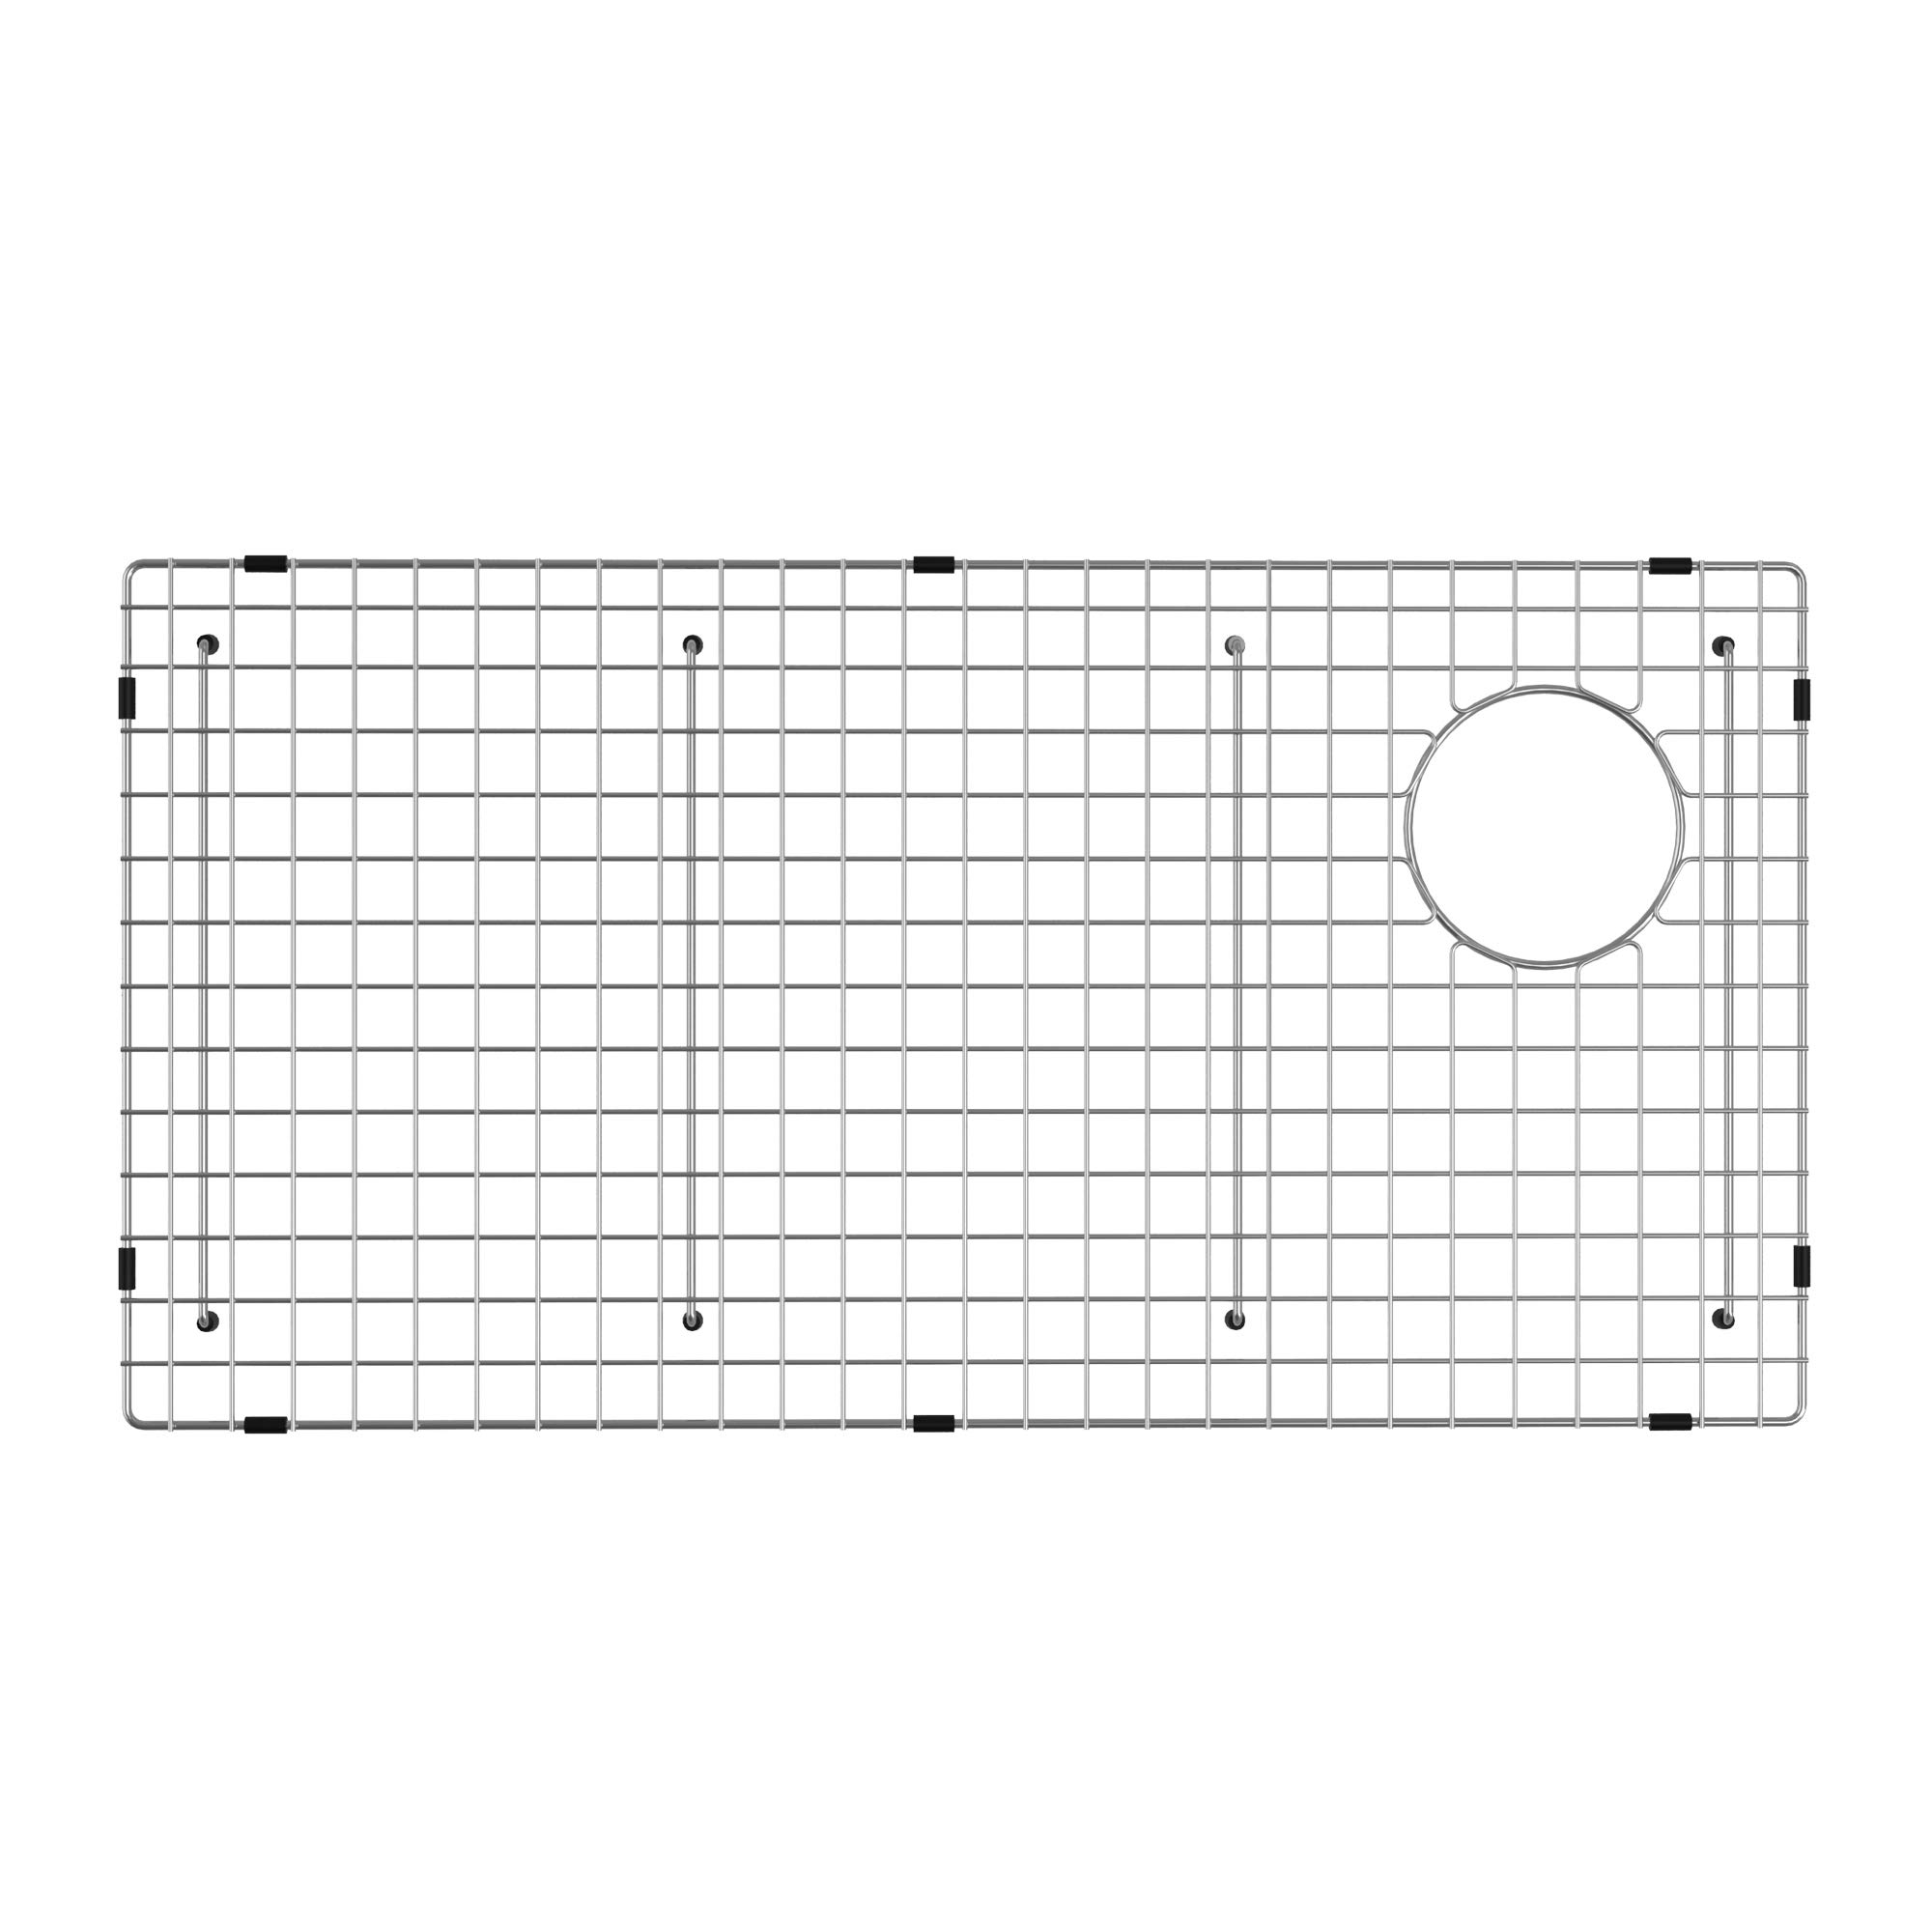 KRAUS KBG-GR2514 Bellucci Series Stainless Steel Kitchen Sink Bottom Grid with Soft Rubber Bumpers for 30-inch Kitchen Sink by Kraus